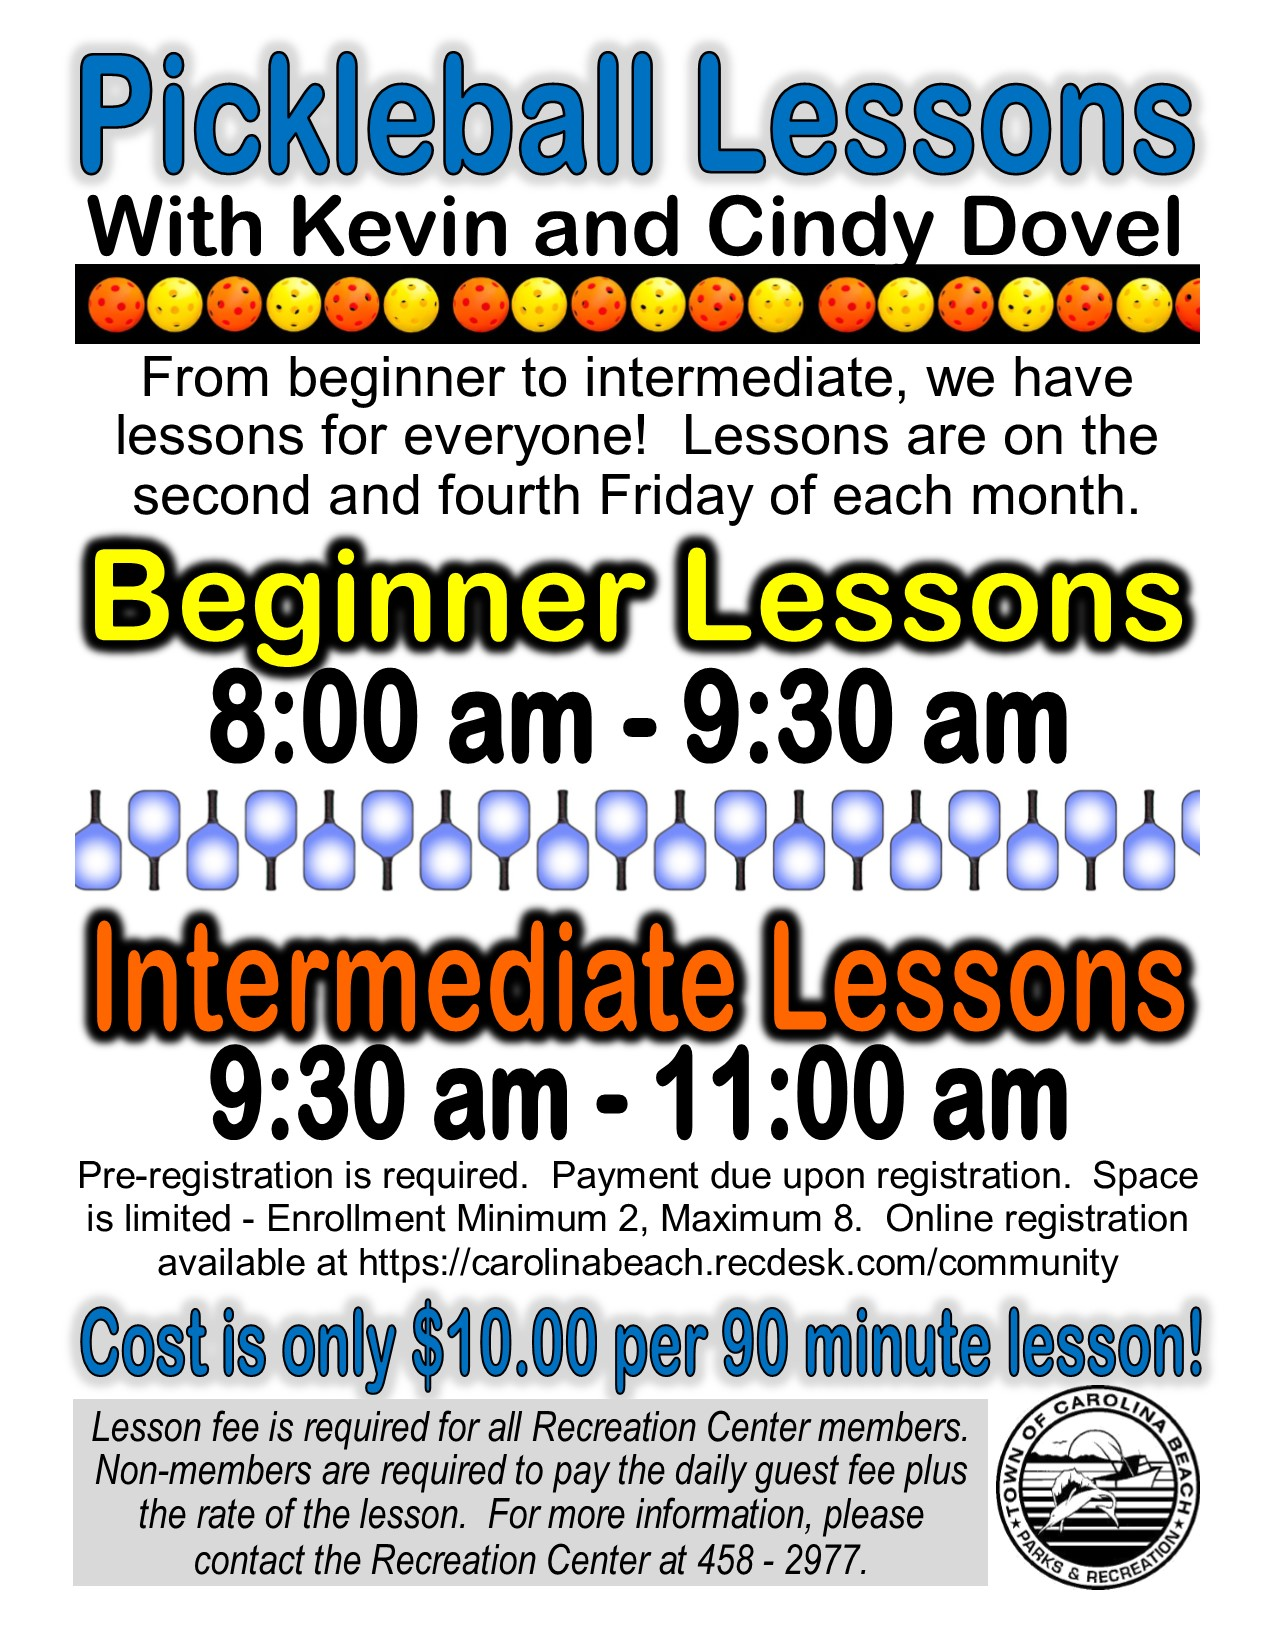 Kevin & Cindy's Pickleball Lessons